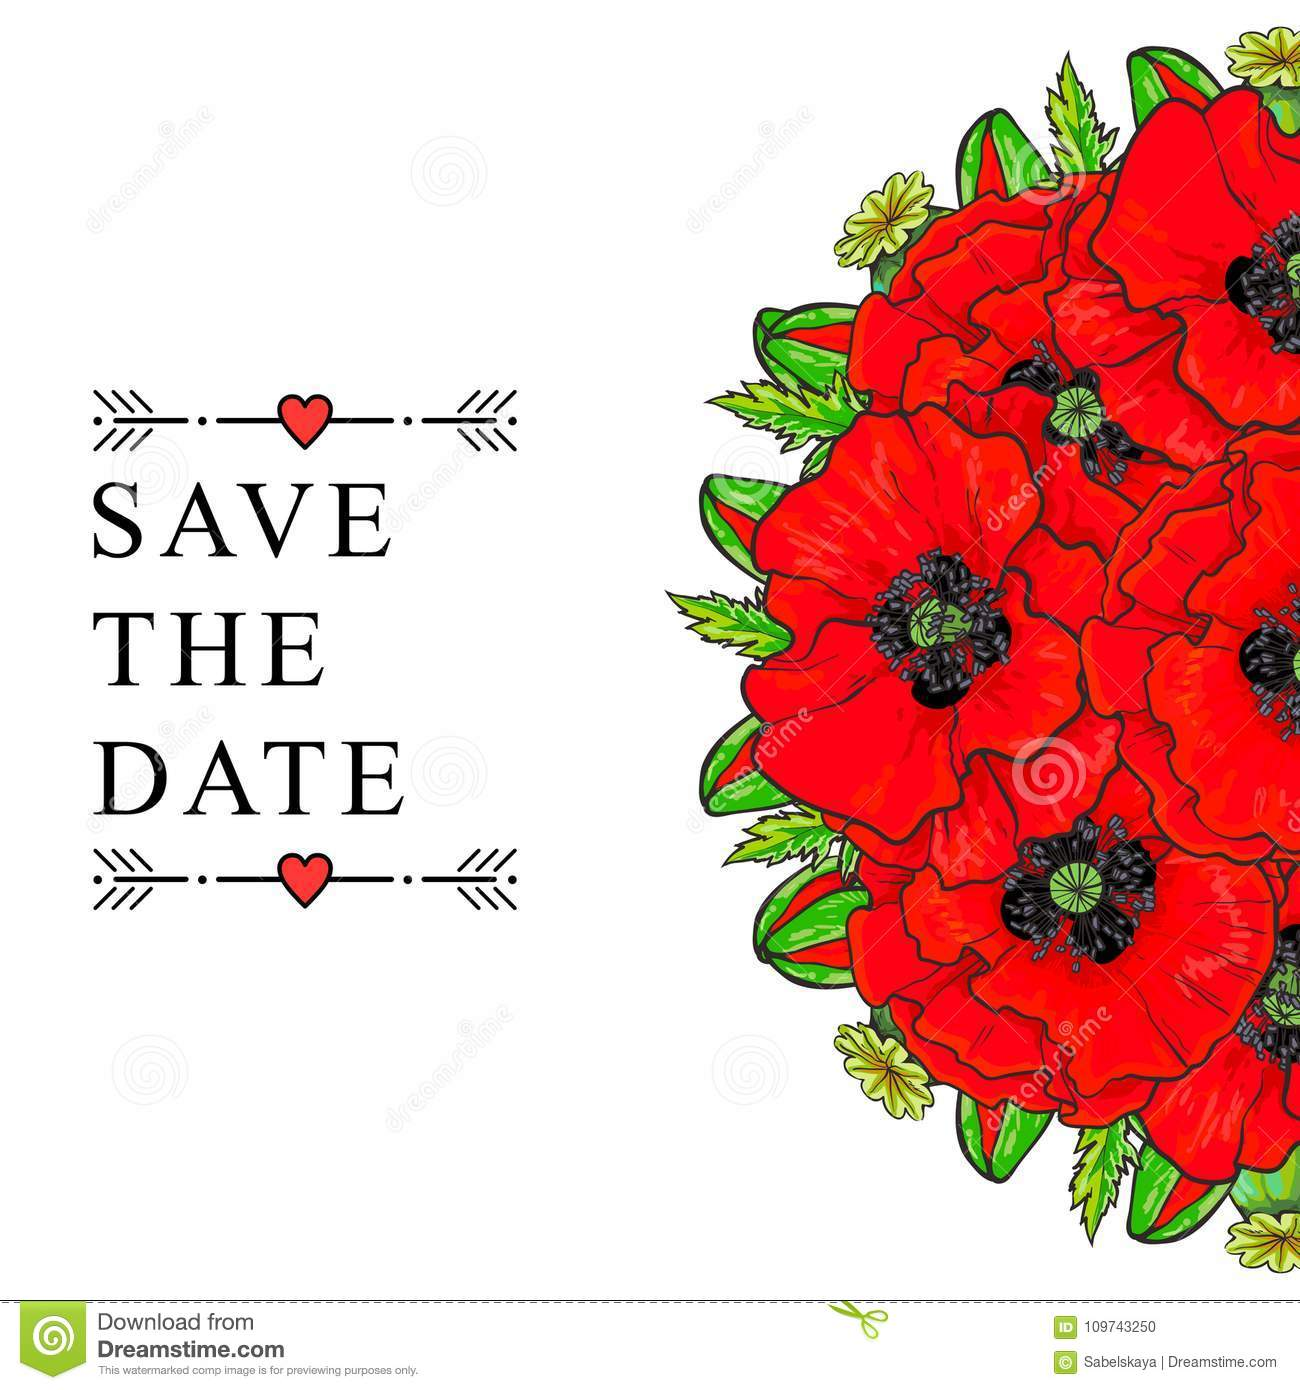 Save The Date Wedding Invitation Template, Poppies Stock Vector ...